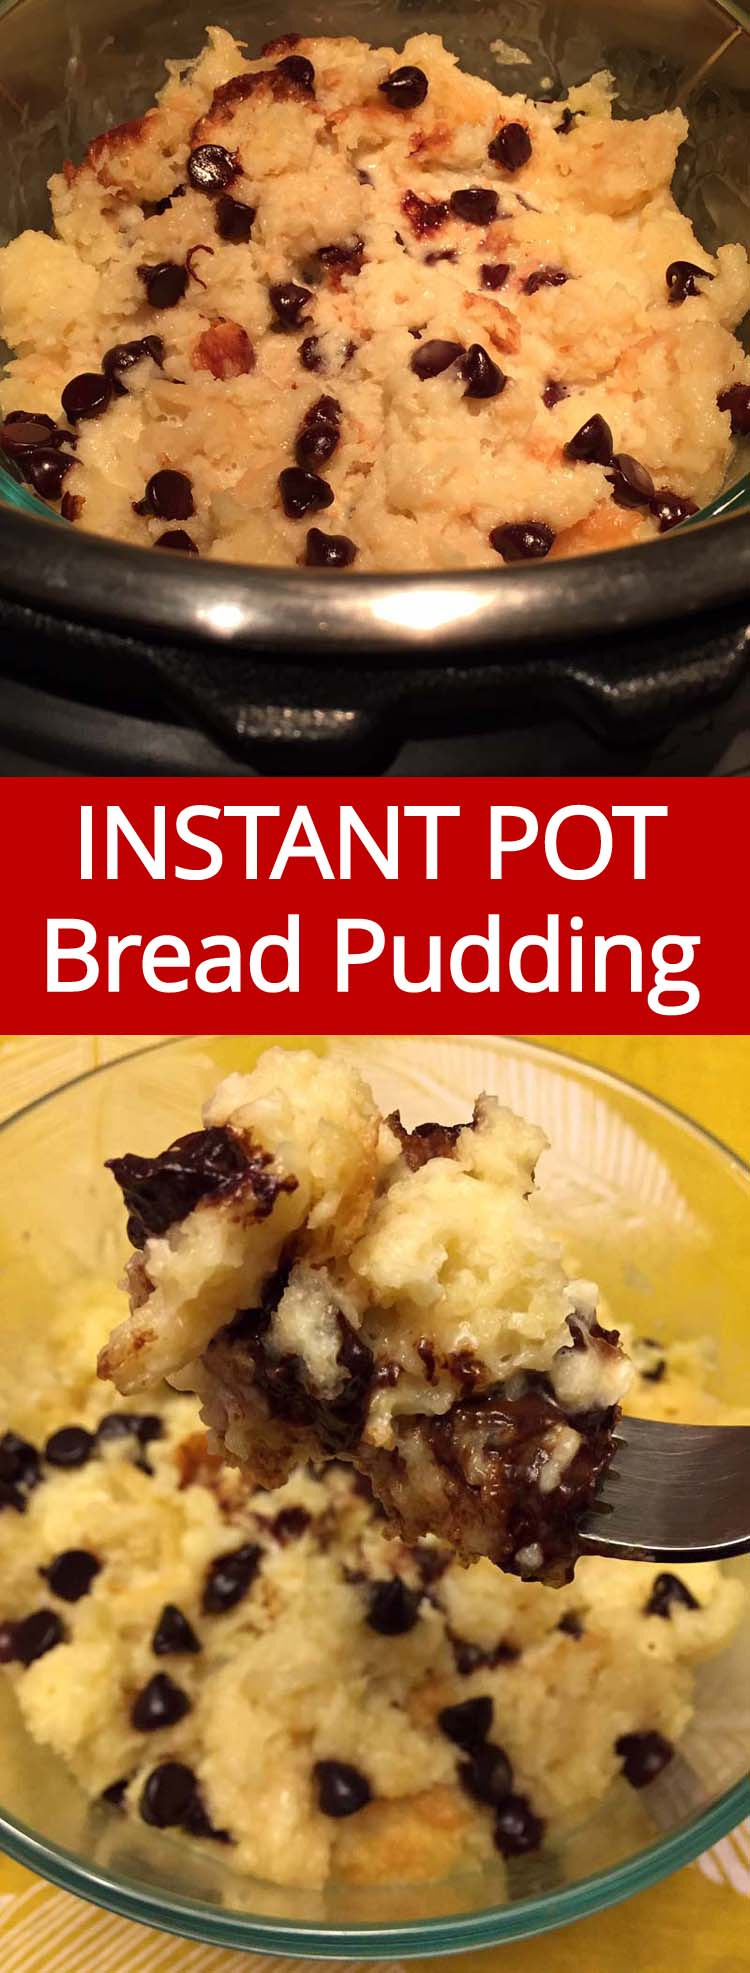 This Instant Pot bread pudding is amazing! So sweet and creamy, simply perfect! This is the only bread pudding recipe you'll ever need!